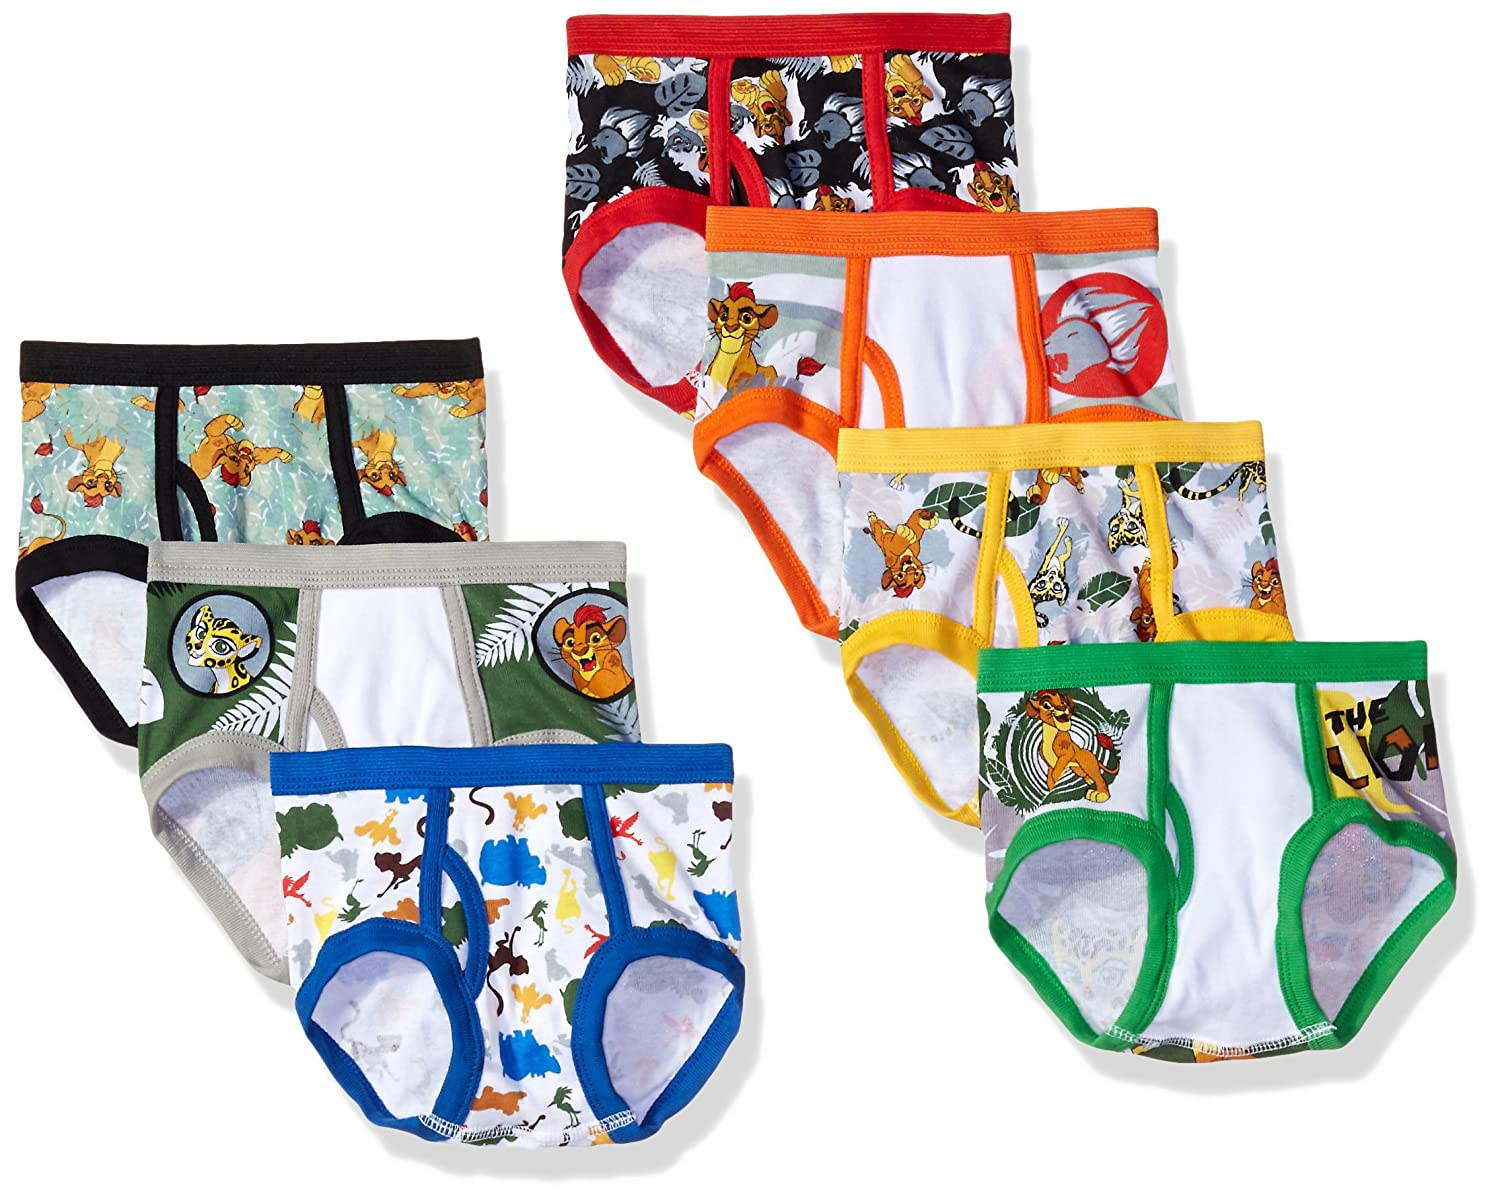 Disney Boy's Underwear Set TBUP2714